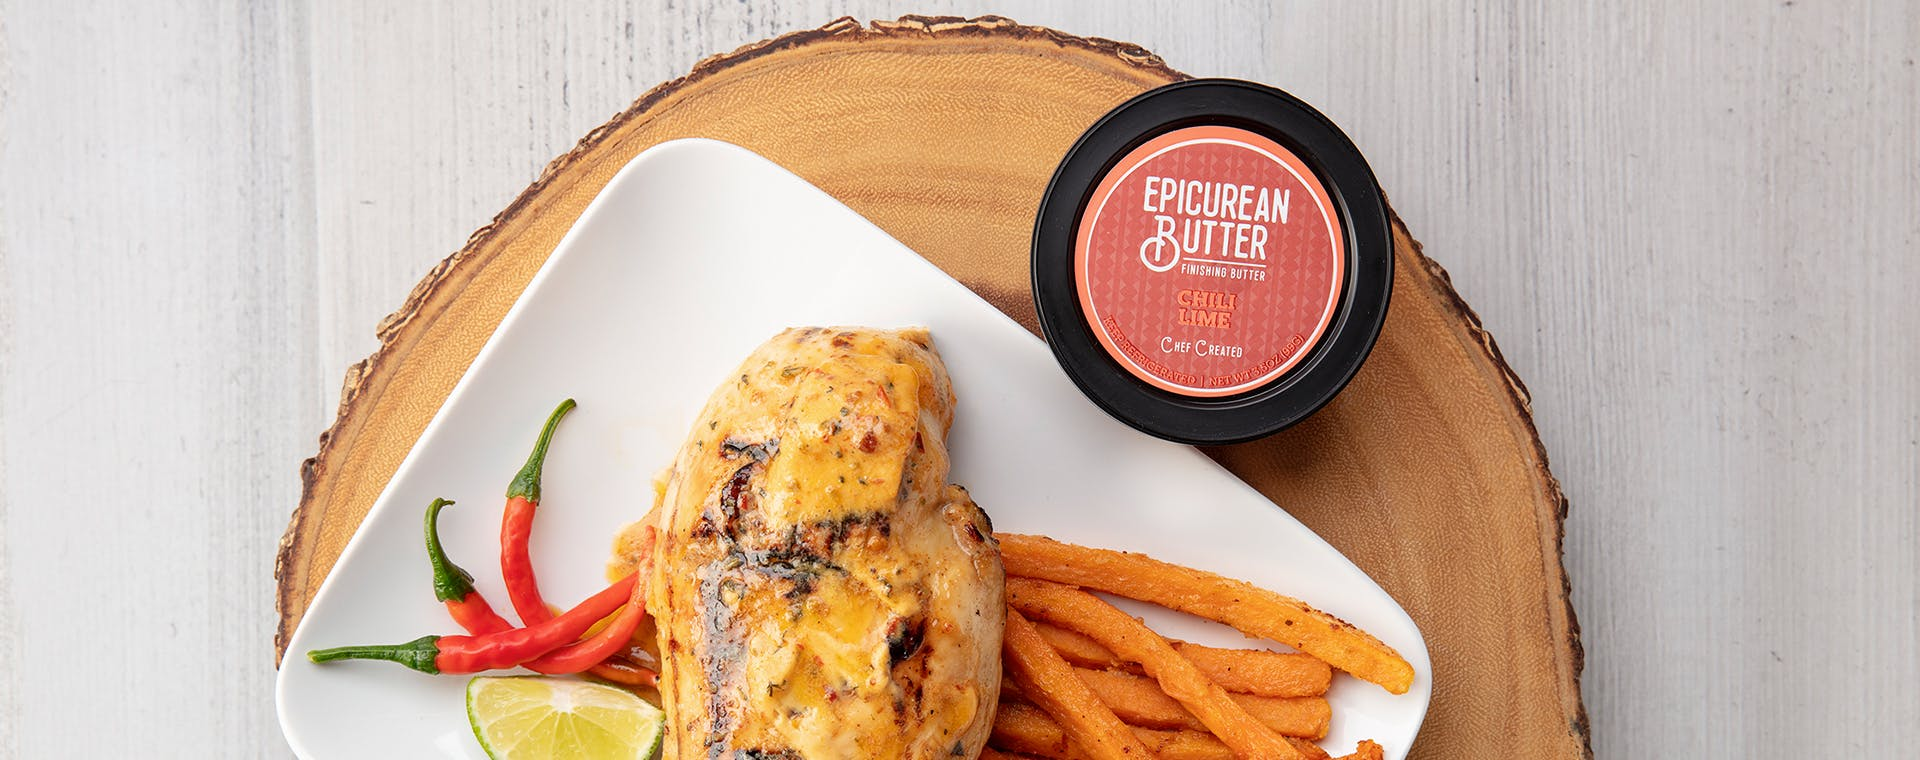 Chicken Breasts with Epicurean Chili Lime flavored butter